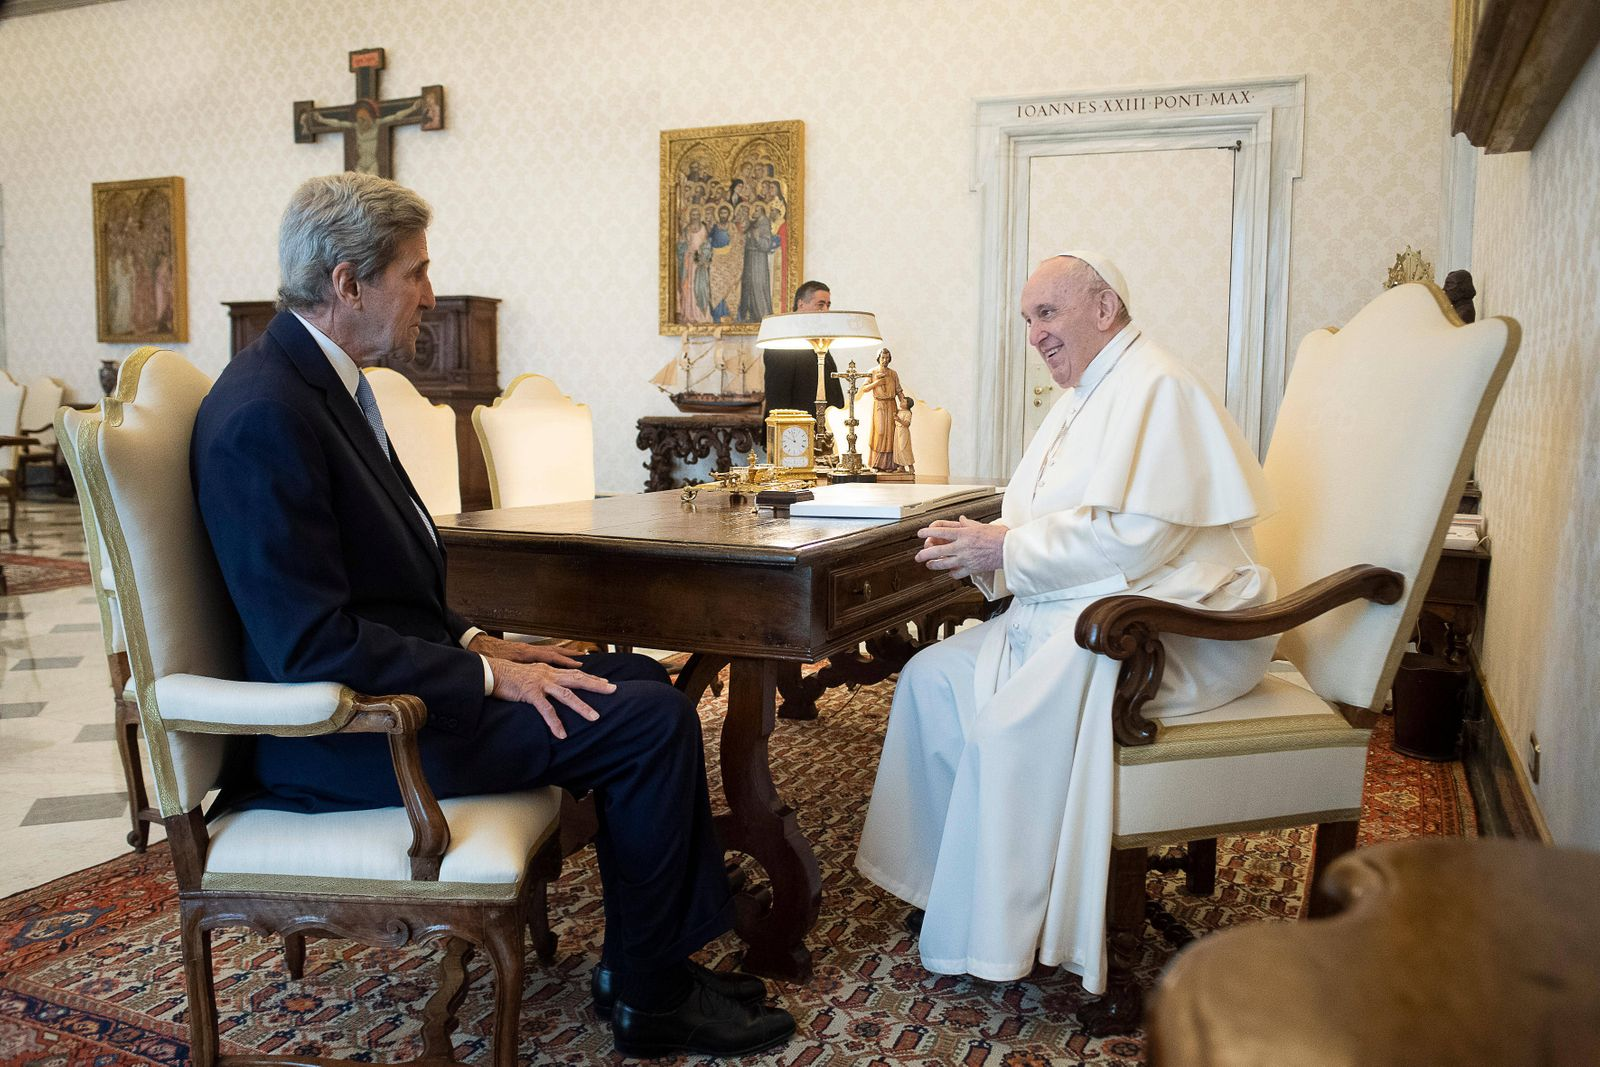 May 15,2021 : Pope Francis meets in audience The Honorable John Forbes Kerry, Special Envoy of the President of the Unit